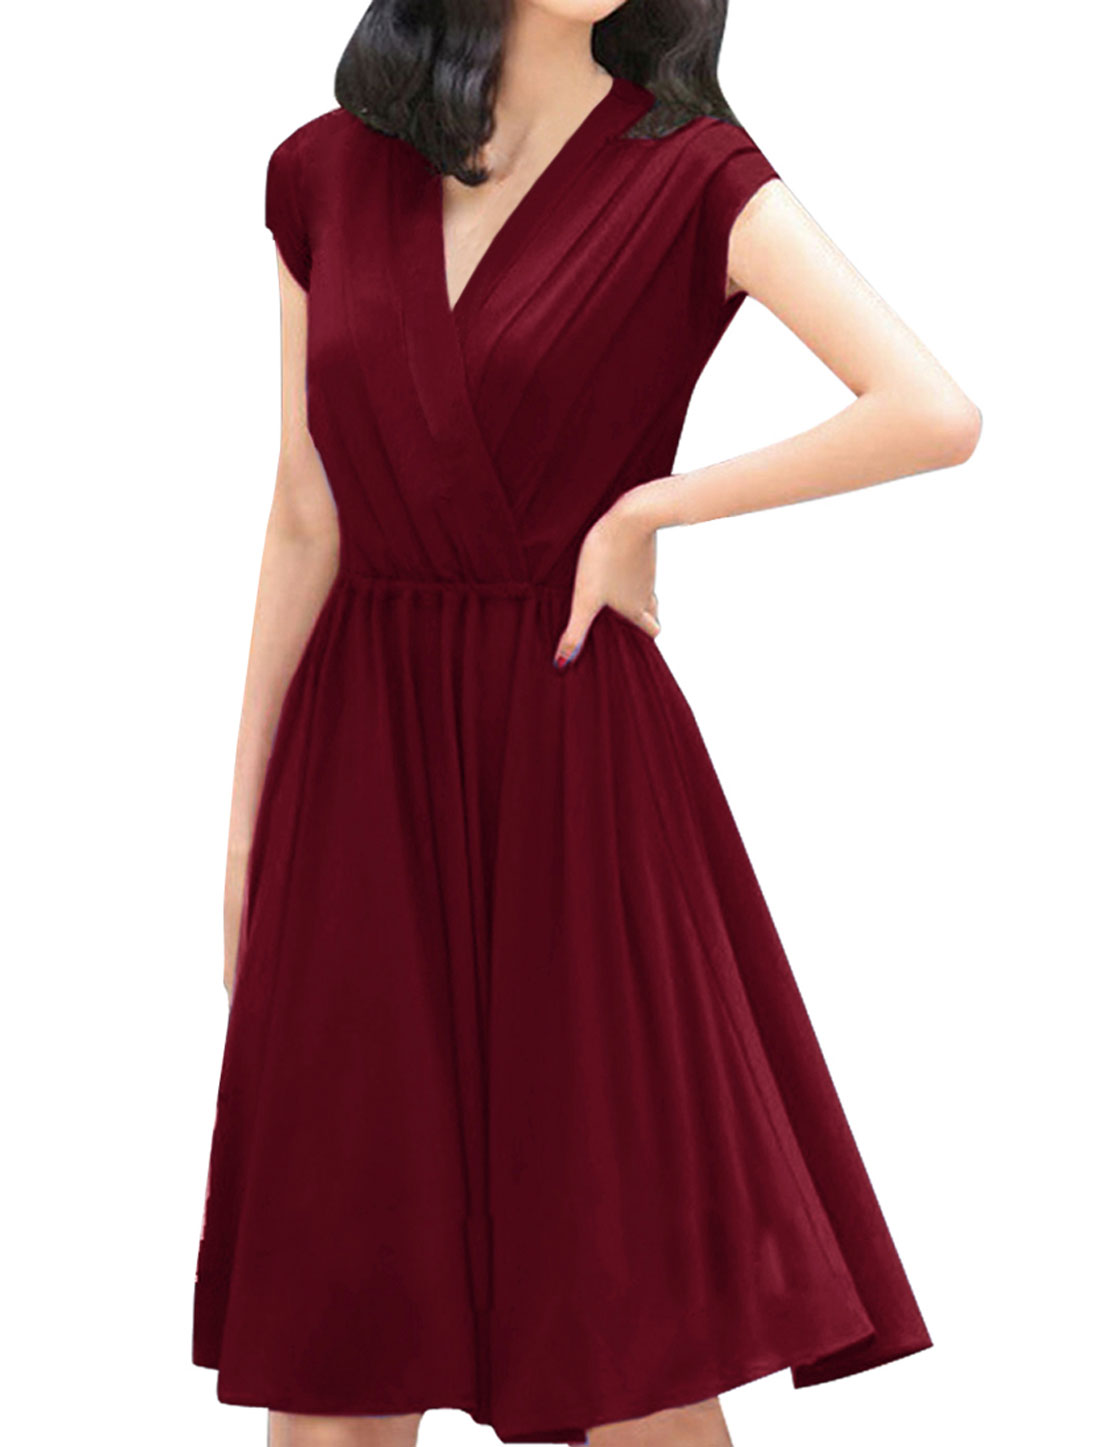 Chic Pure Burgundy Stretchy Burgundy Dress for Lady M